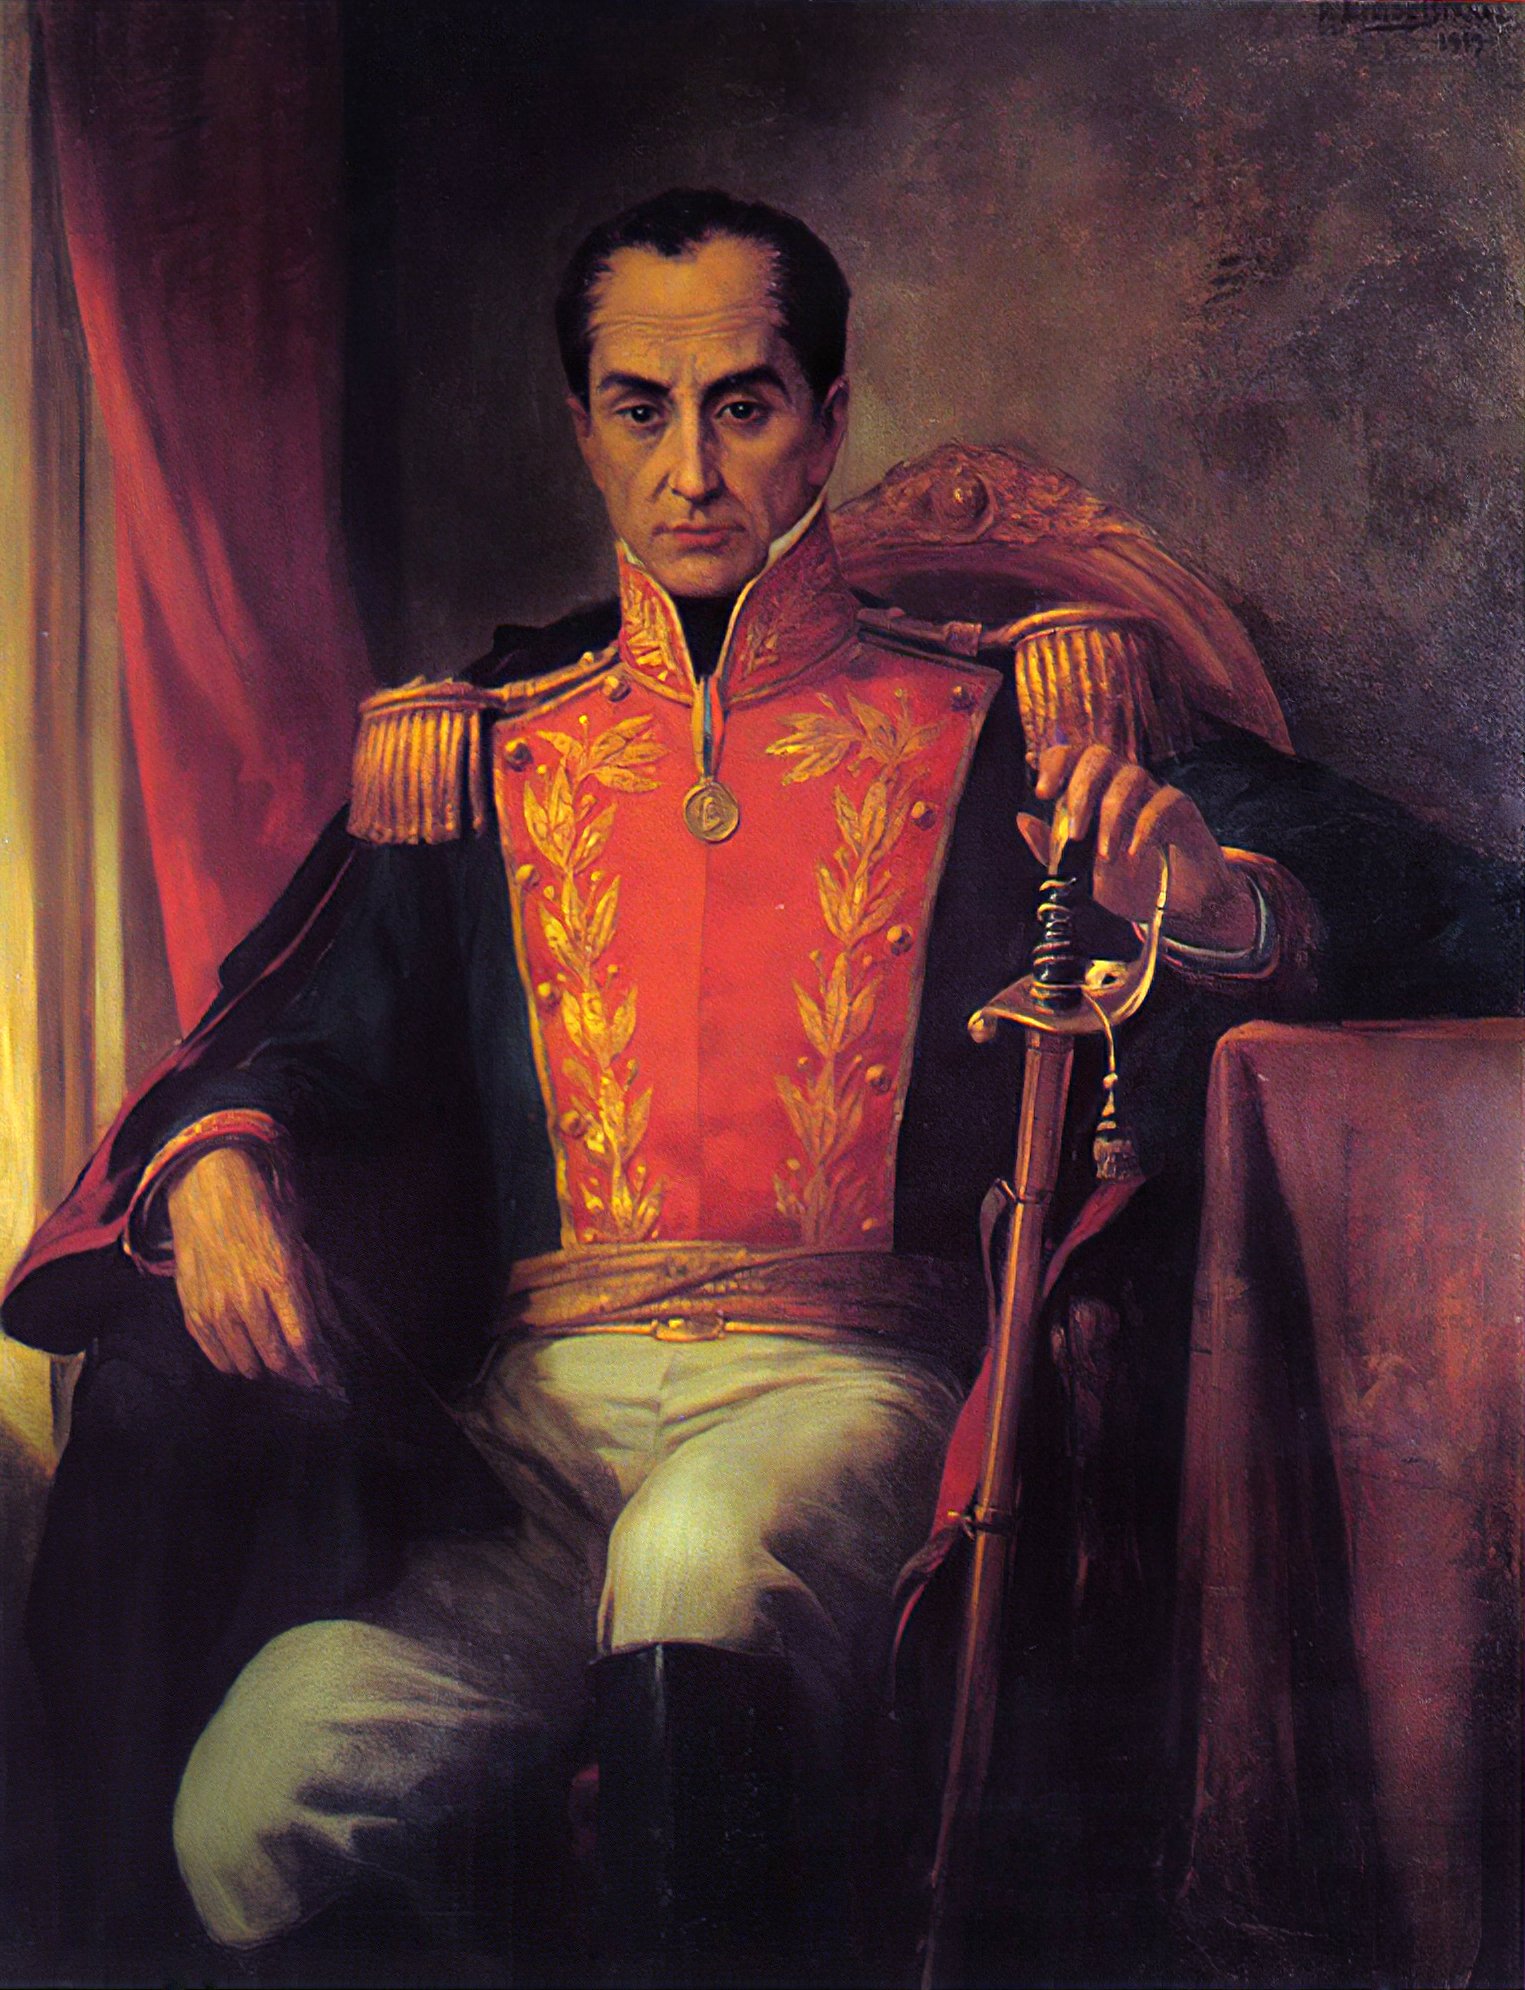 Simon Bolivar - Liberator of the Americas